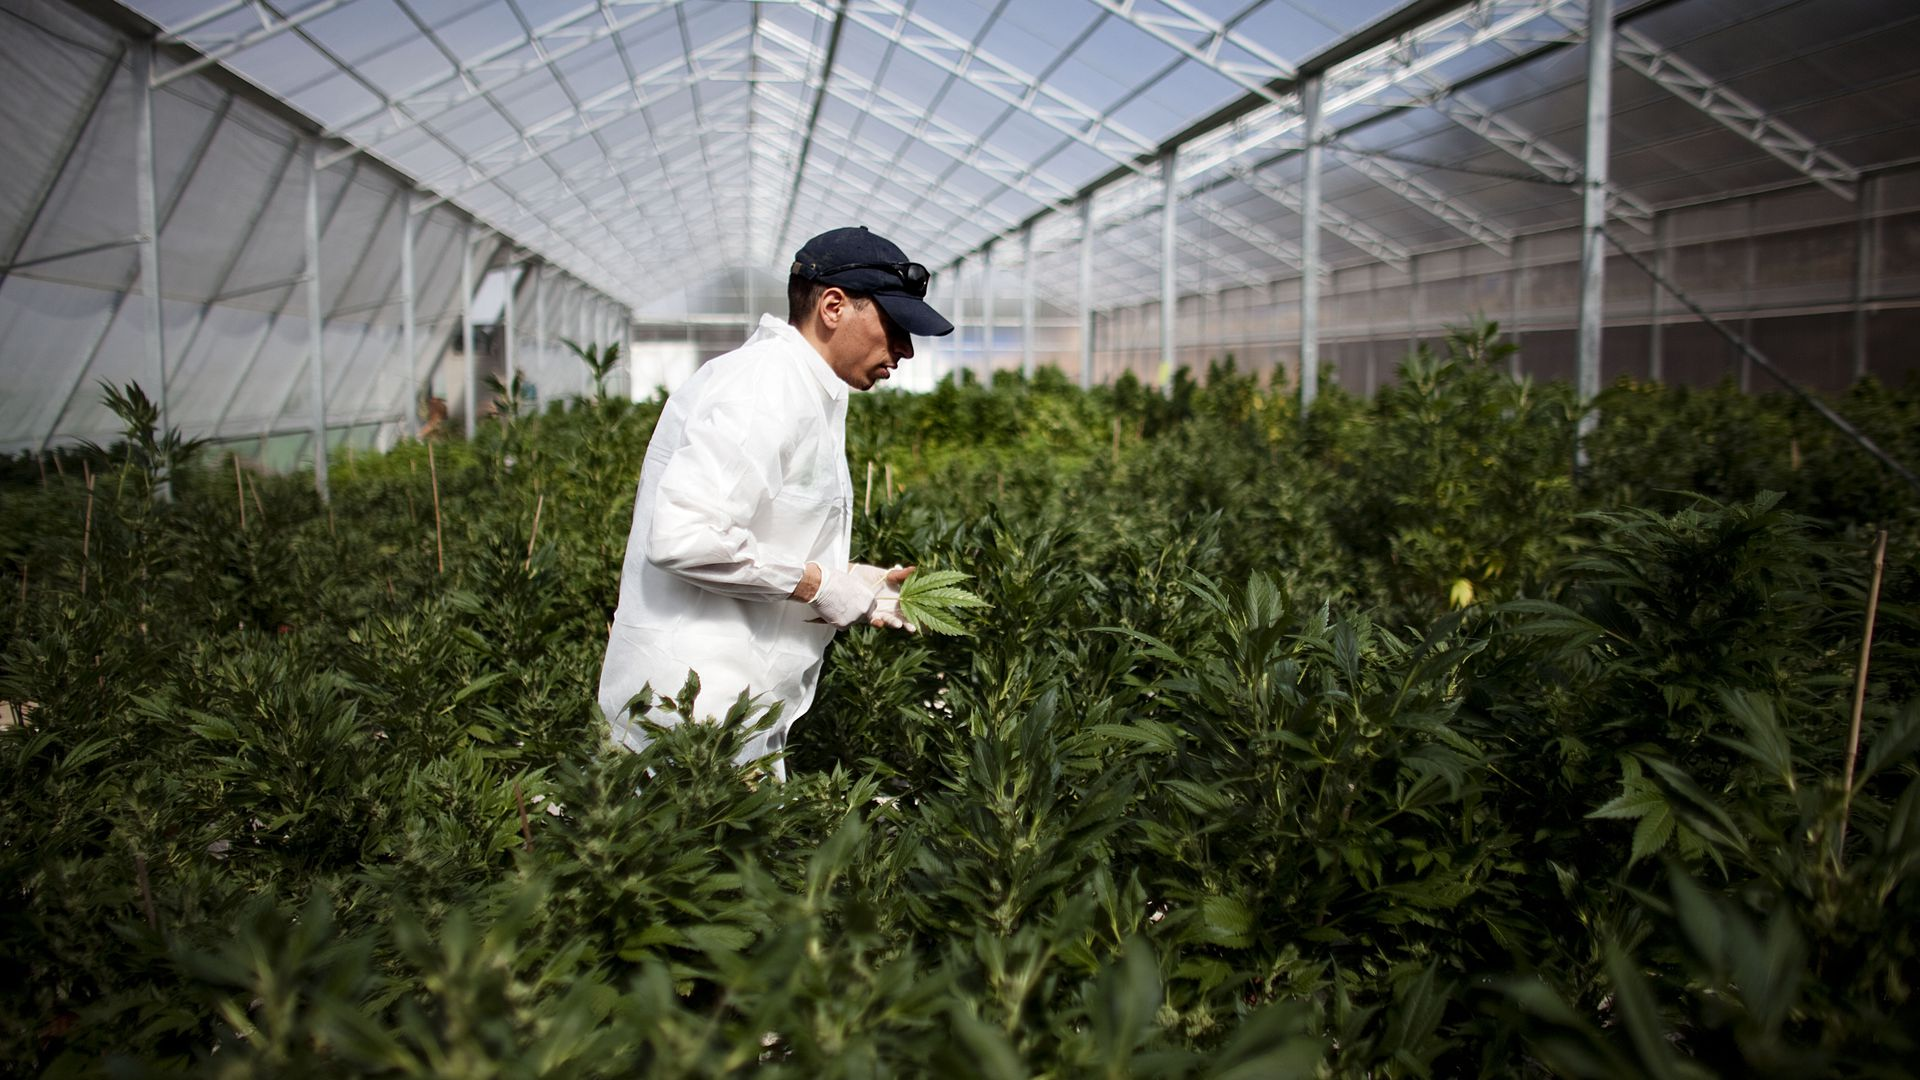 A man moves through a marijuana field in a lab coat